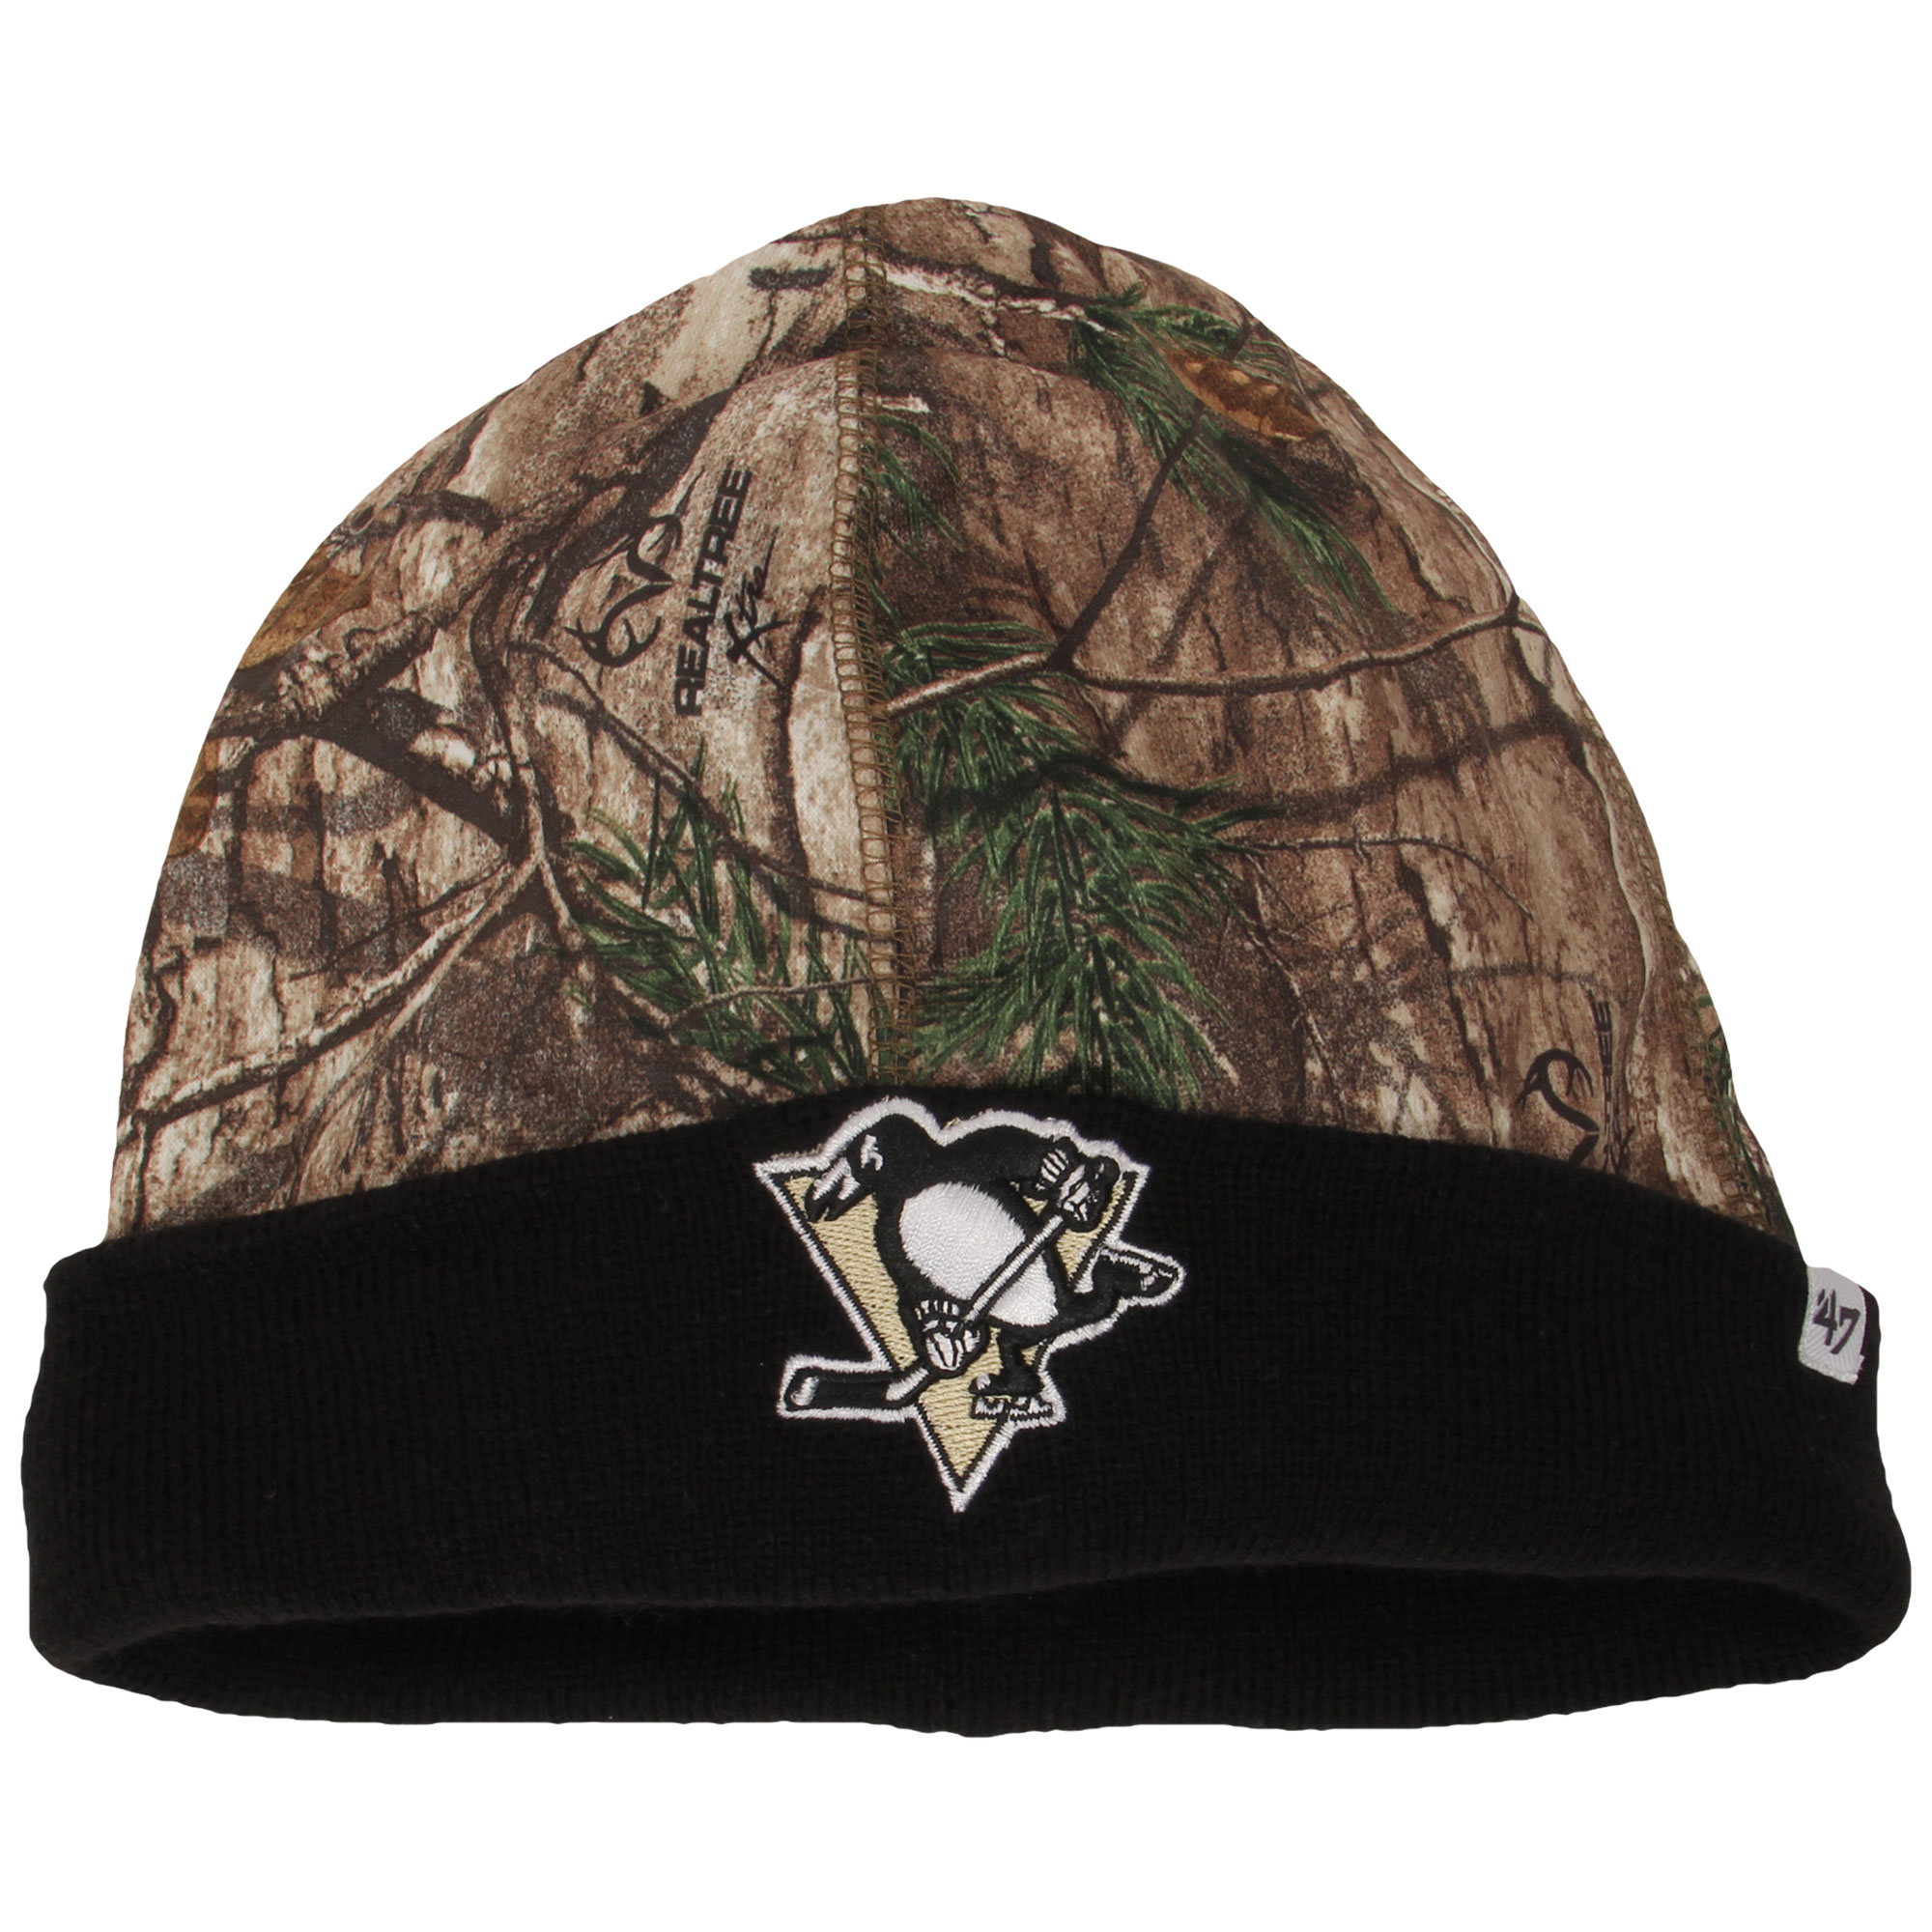 Pittsburgh Penguins '47 Real Tree Foxden Cuffed Knit Hat - Camo/Black - OSFA